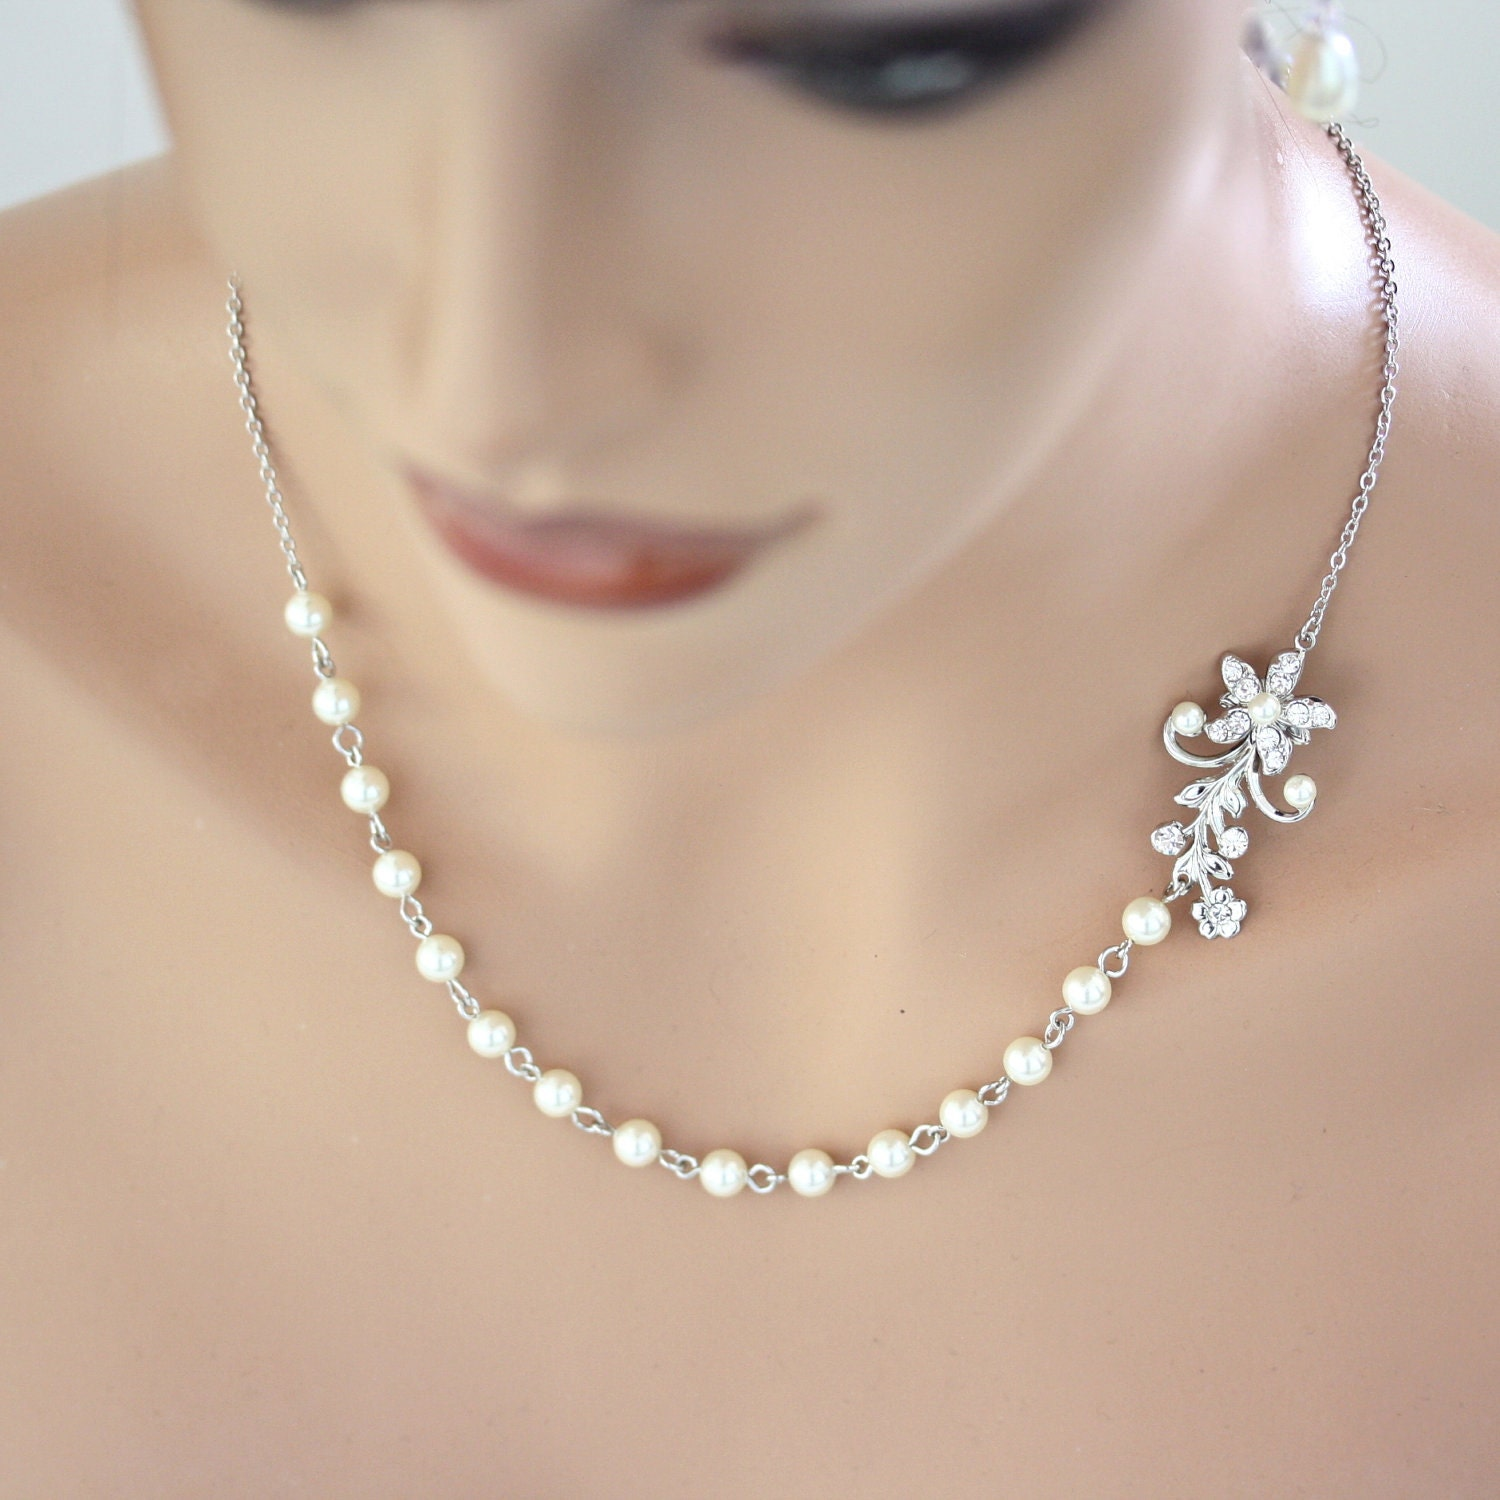 Vintage Bridal Necklace 82